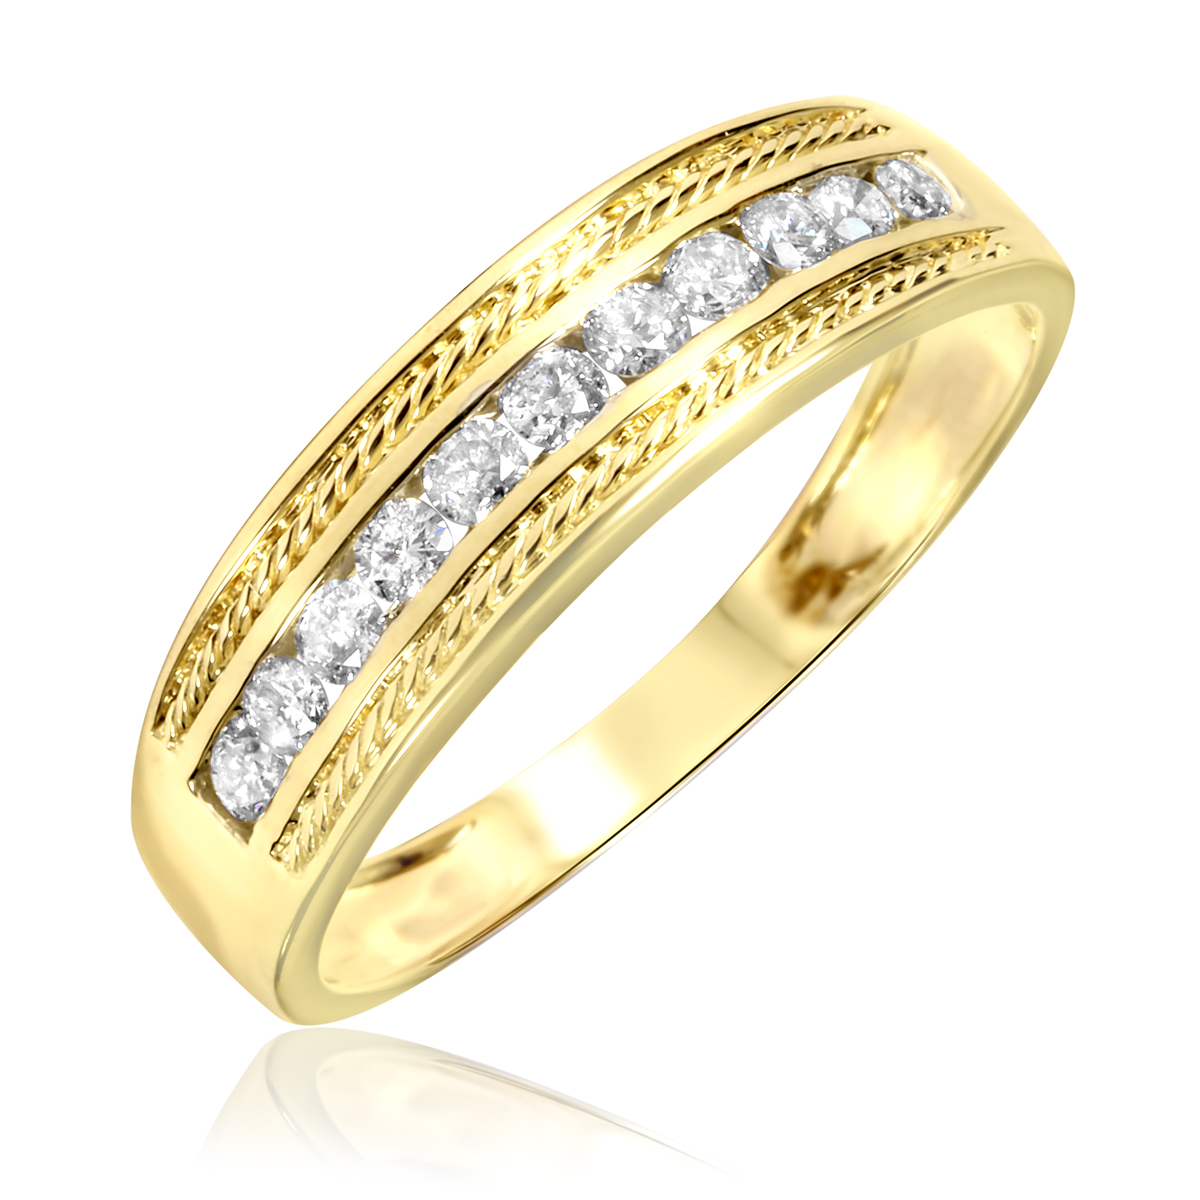 tw diamond ladies engagement ring wedding band mens wedding band matching set 10k yellow gold my trio rings bt150y10k p050 - Gold Wedding Rings For Men